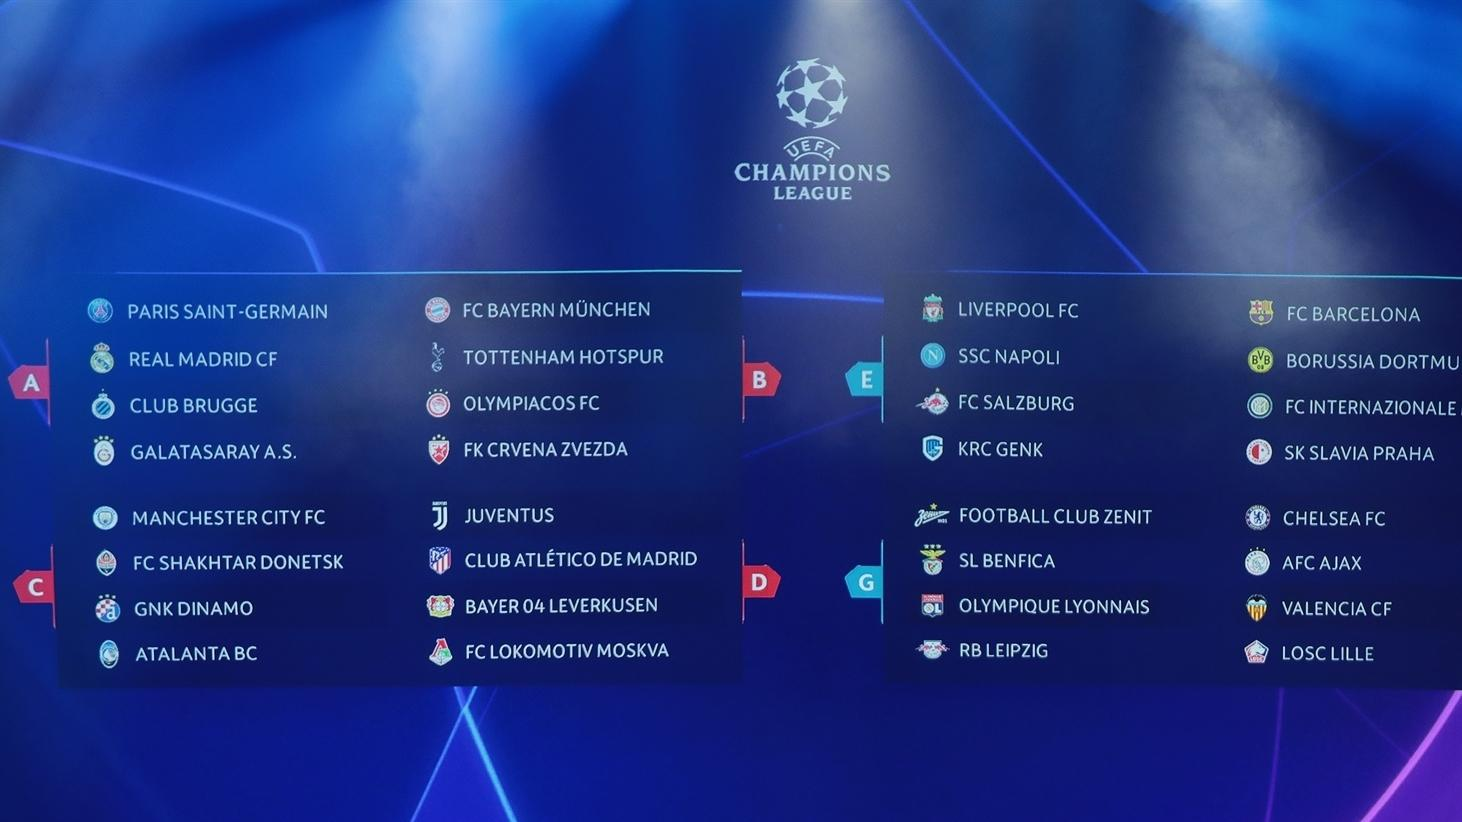 draws uefa champions league uefa com draws uefa champions league uefa com